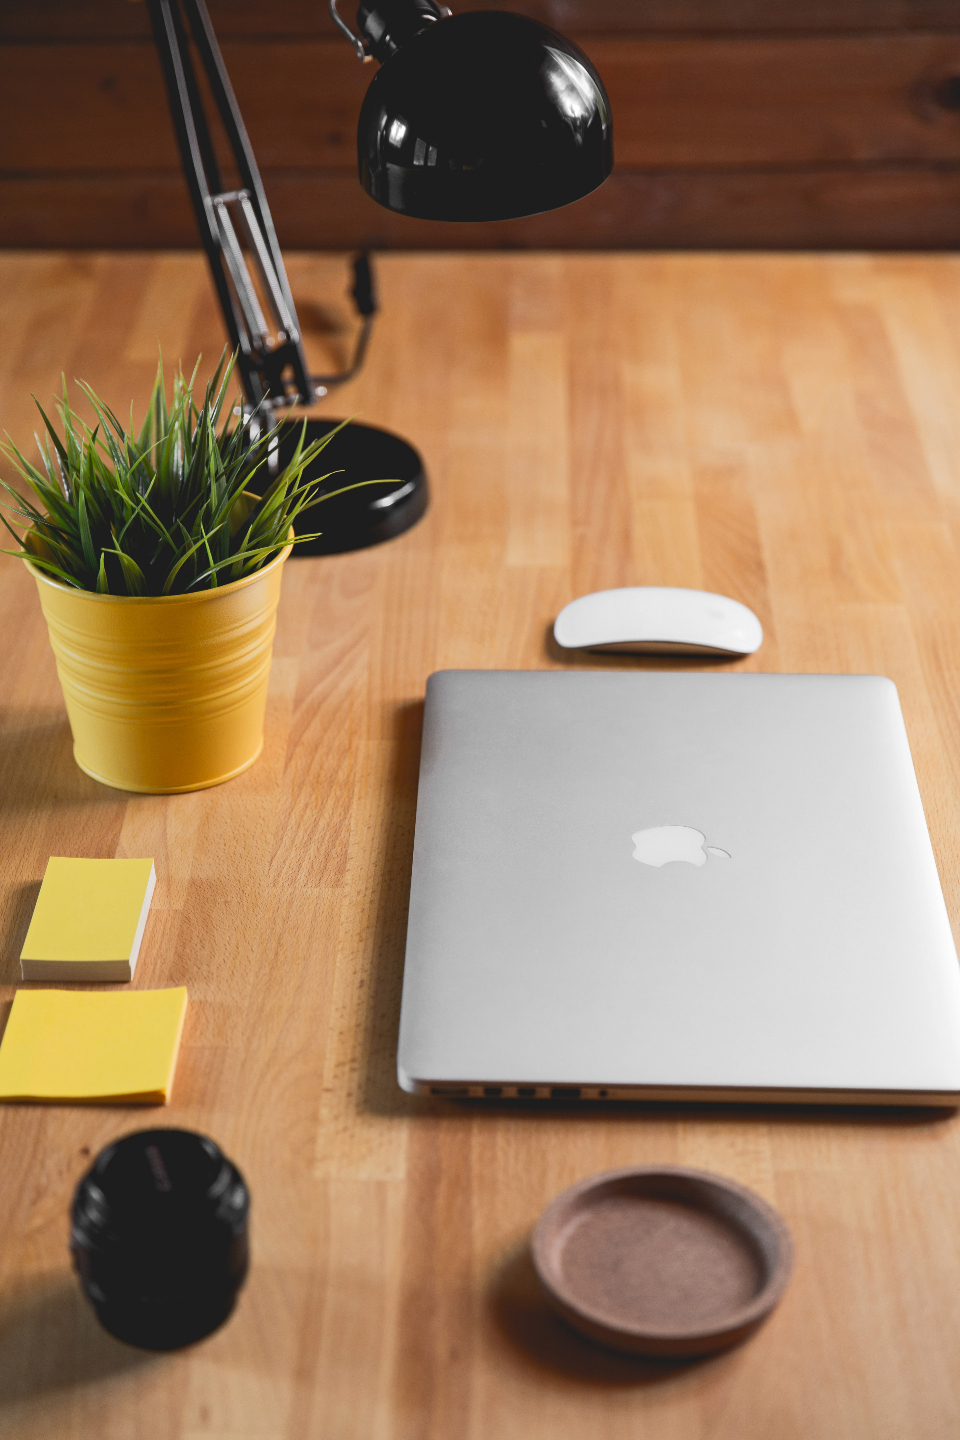 macbook mouse lamp black post it yellow desk office business plant green wood pine camera lens